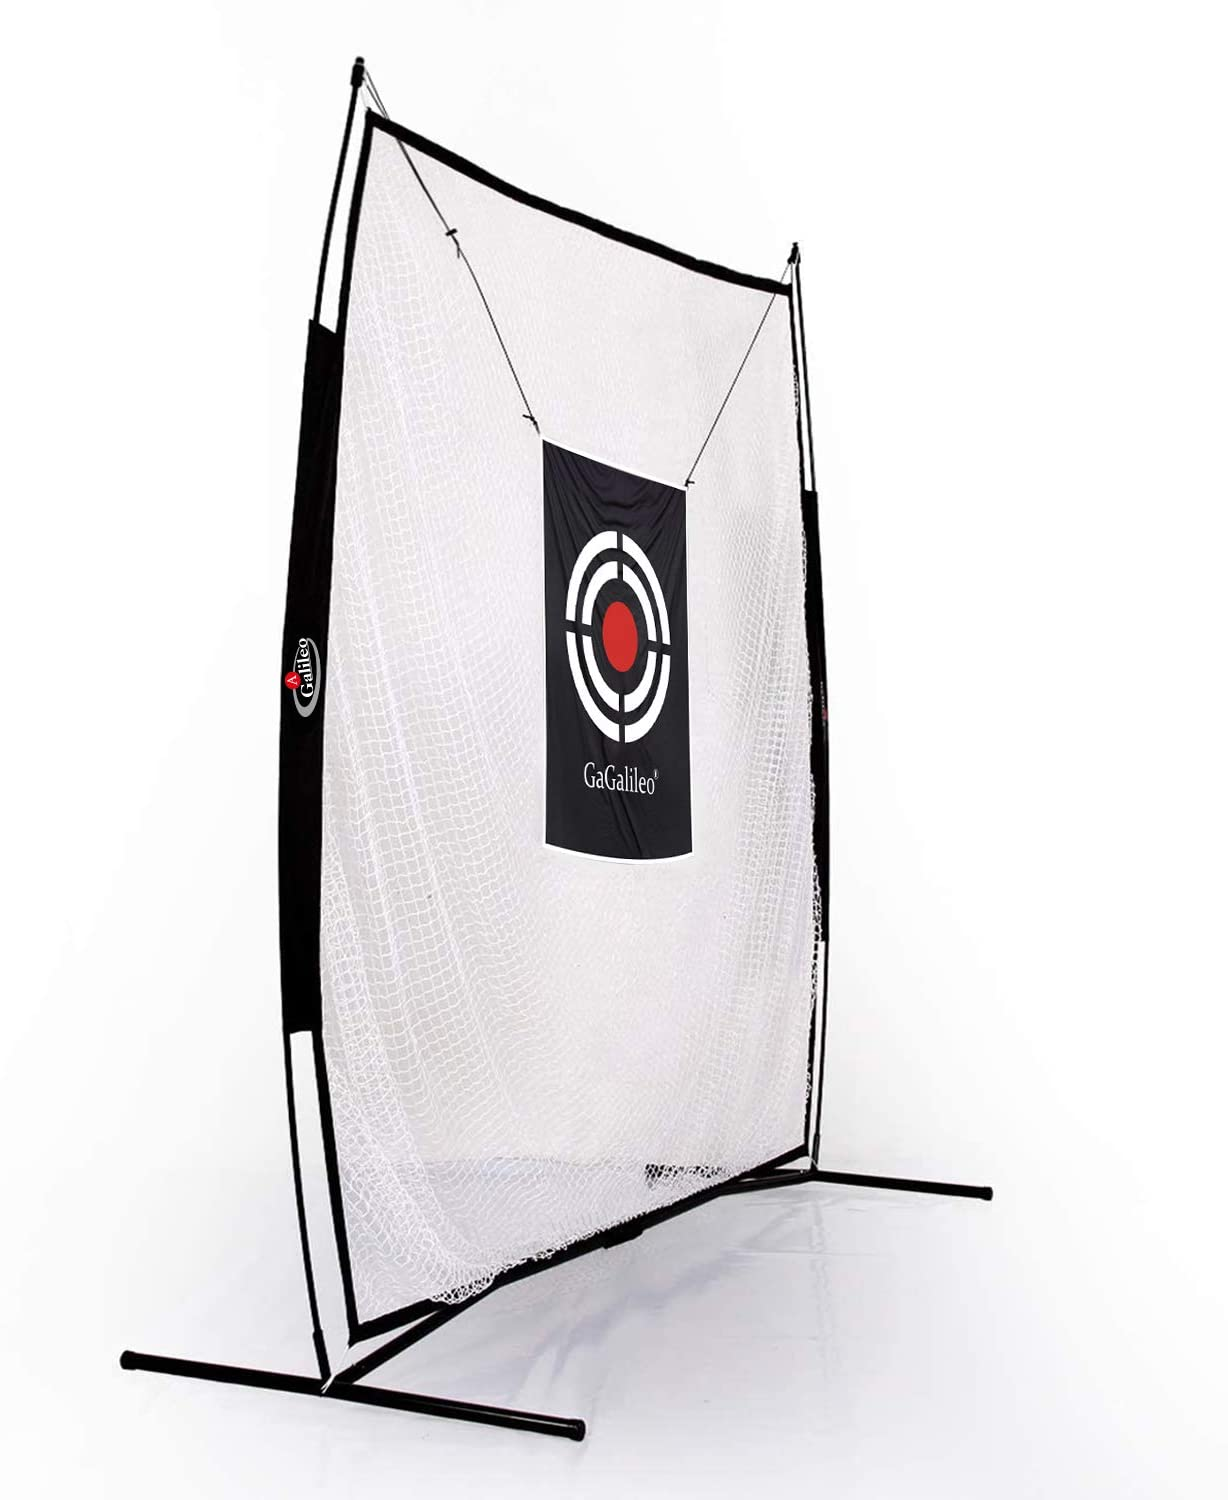 Galileo Golf Practice Net Hitting Nets with Target and Carry Bag | Huge 7'X7'Size